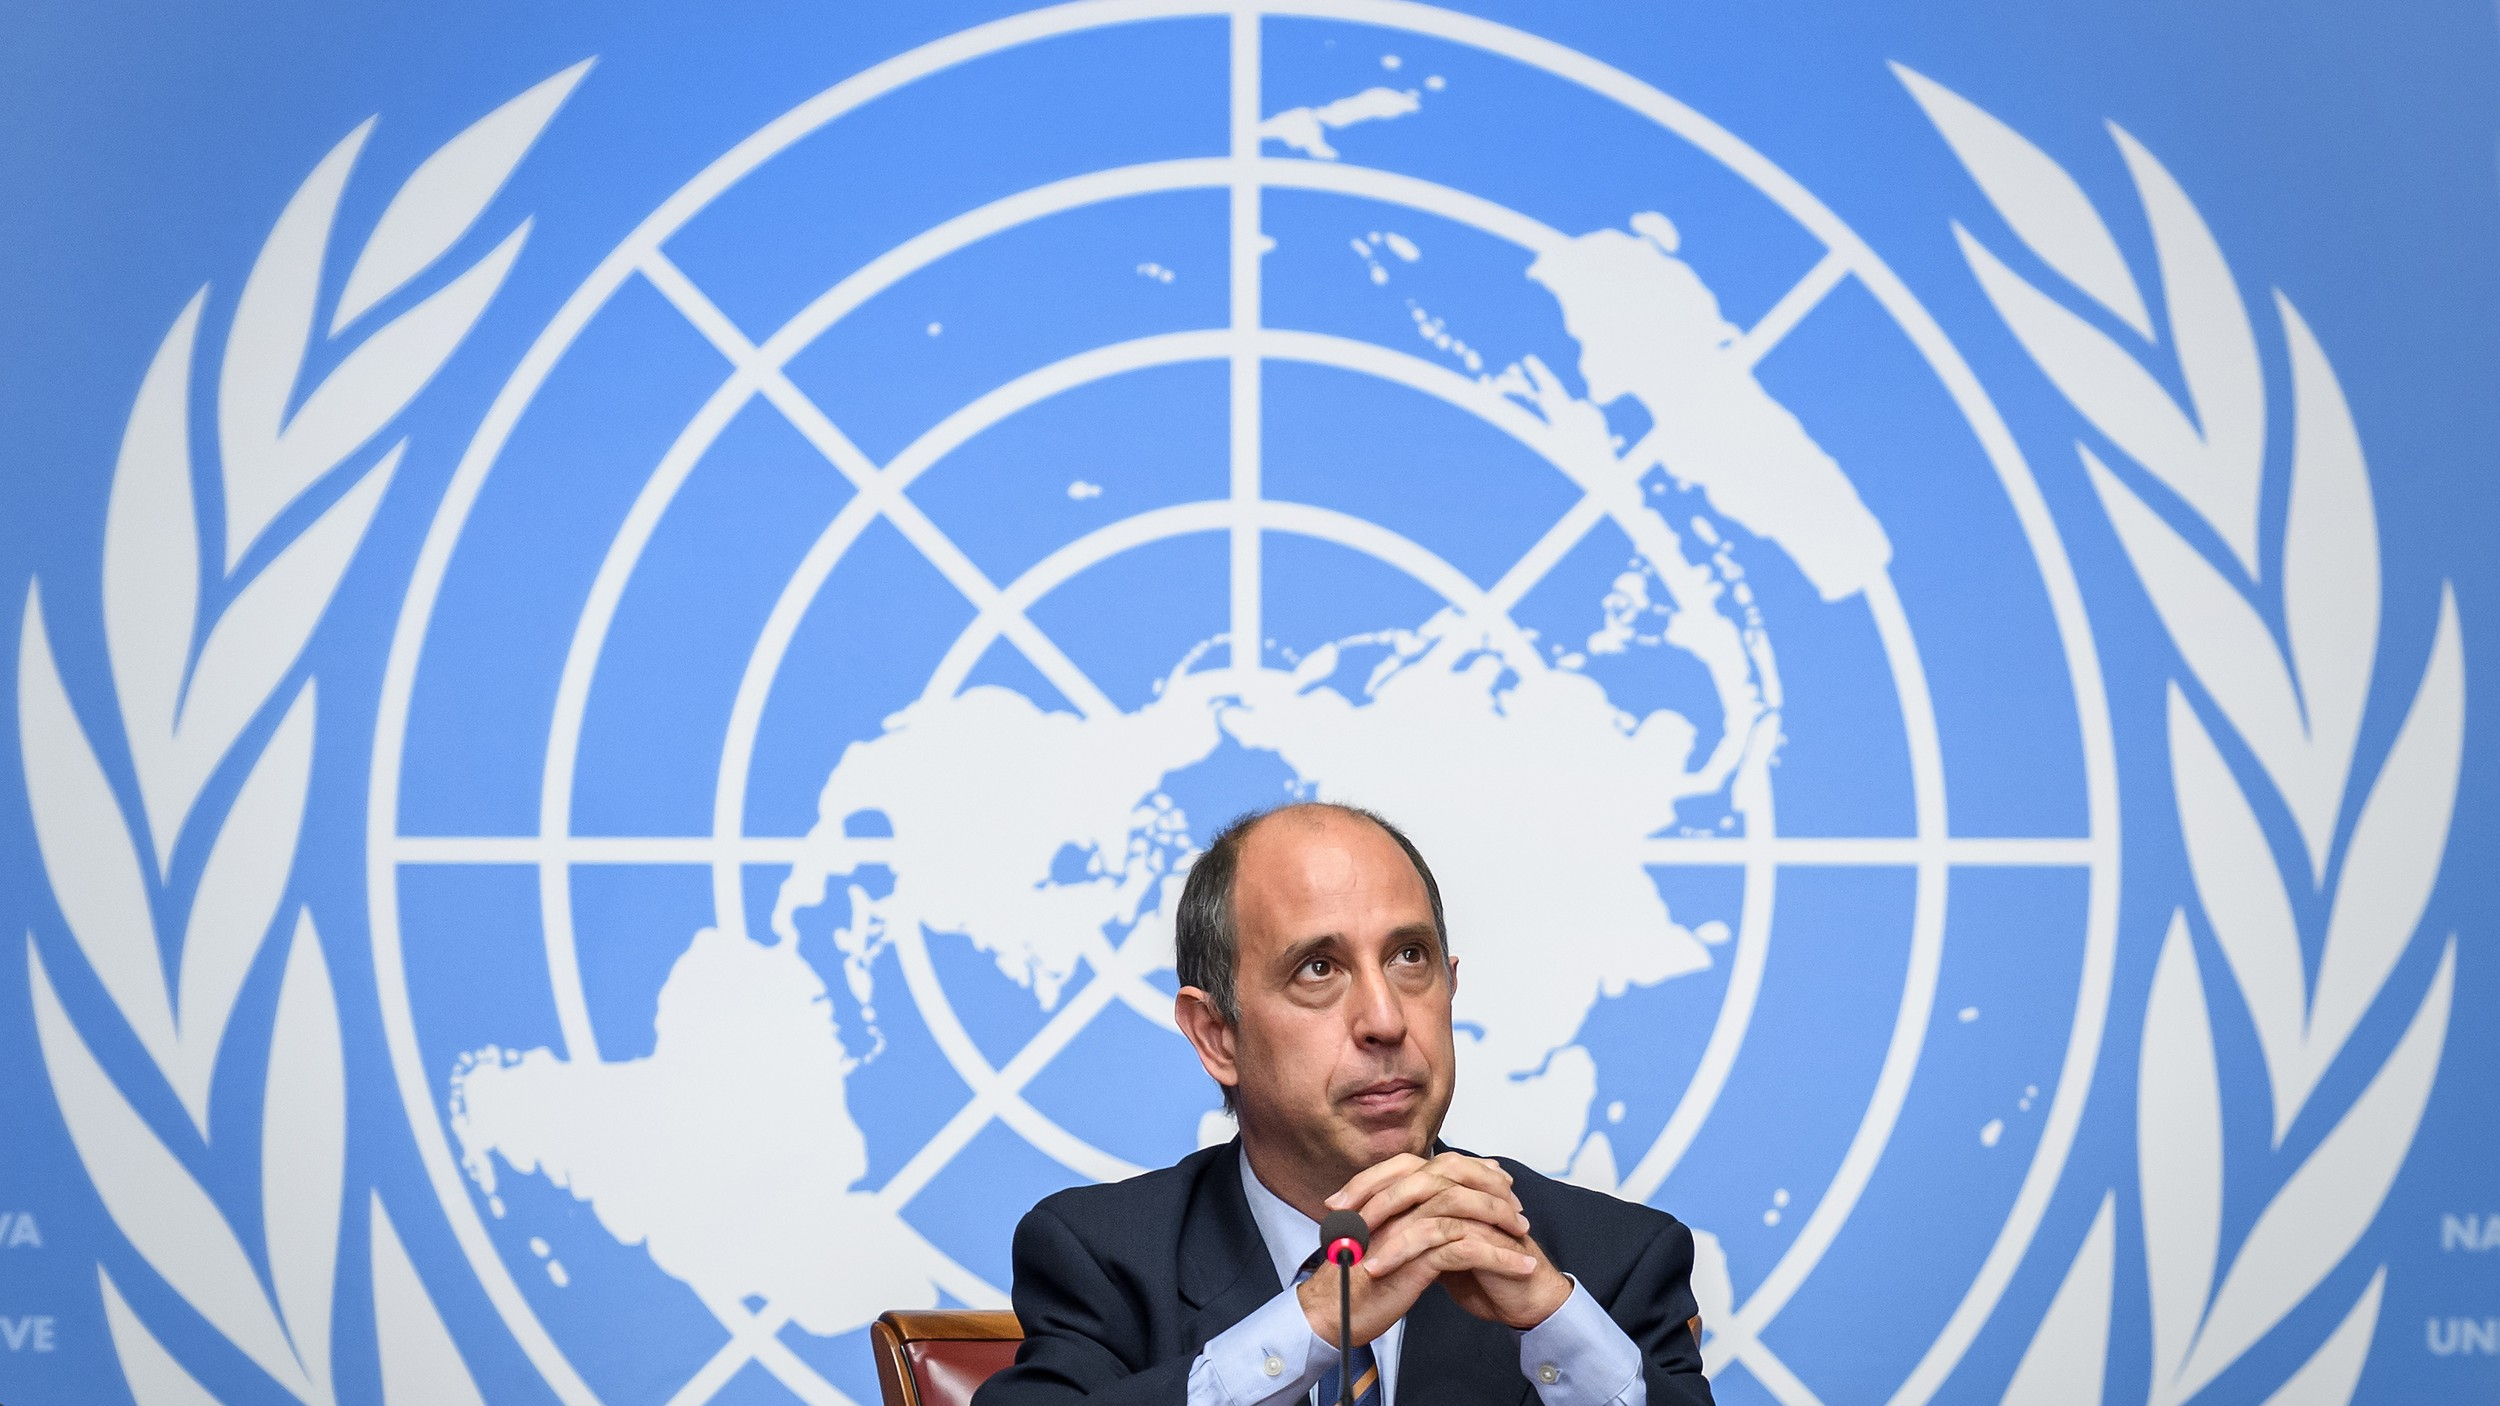 UN Special Rapporteur on the Situation of Human Rights in North Korea Tomas Ojea Quintana attends a press conference after delivering his report before the Human Rights Council in Geneva, March 9, 2020.